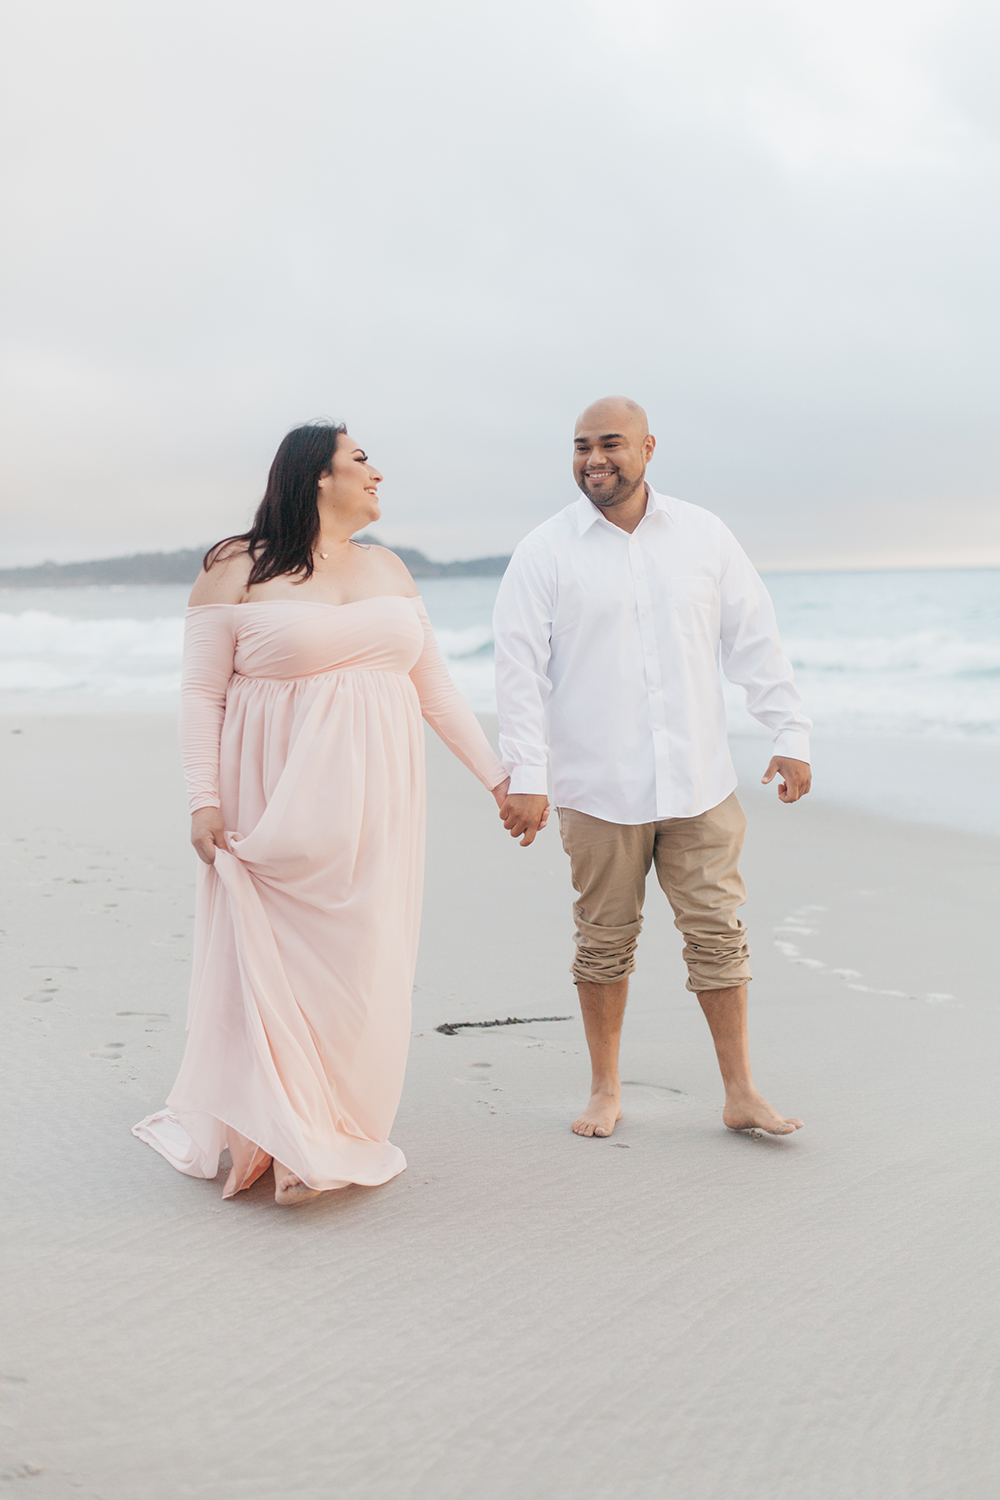 veronica-fausto-monterey-bay-maternity-session-17